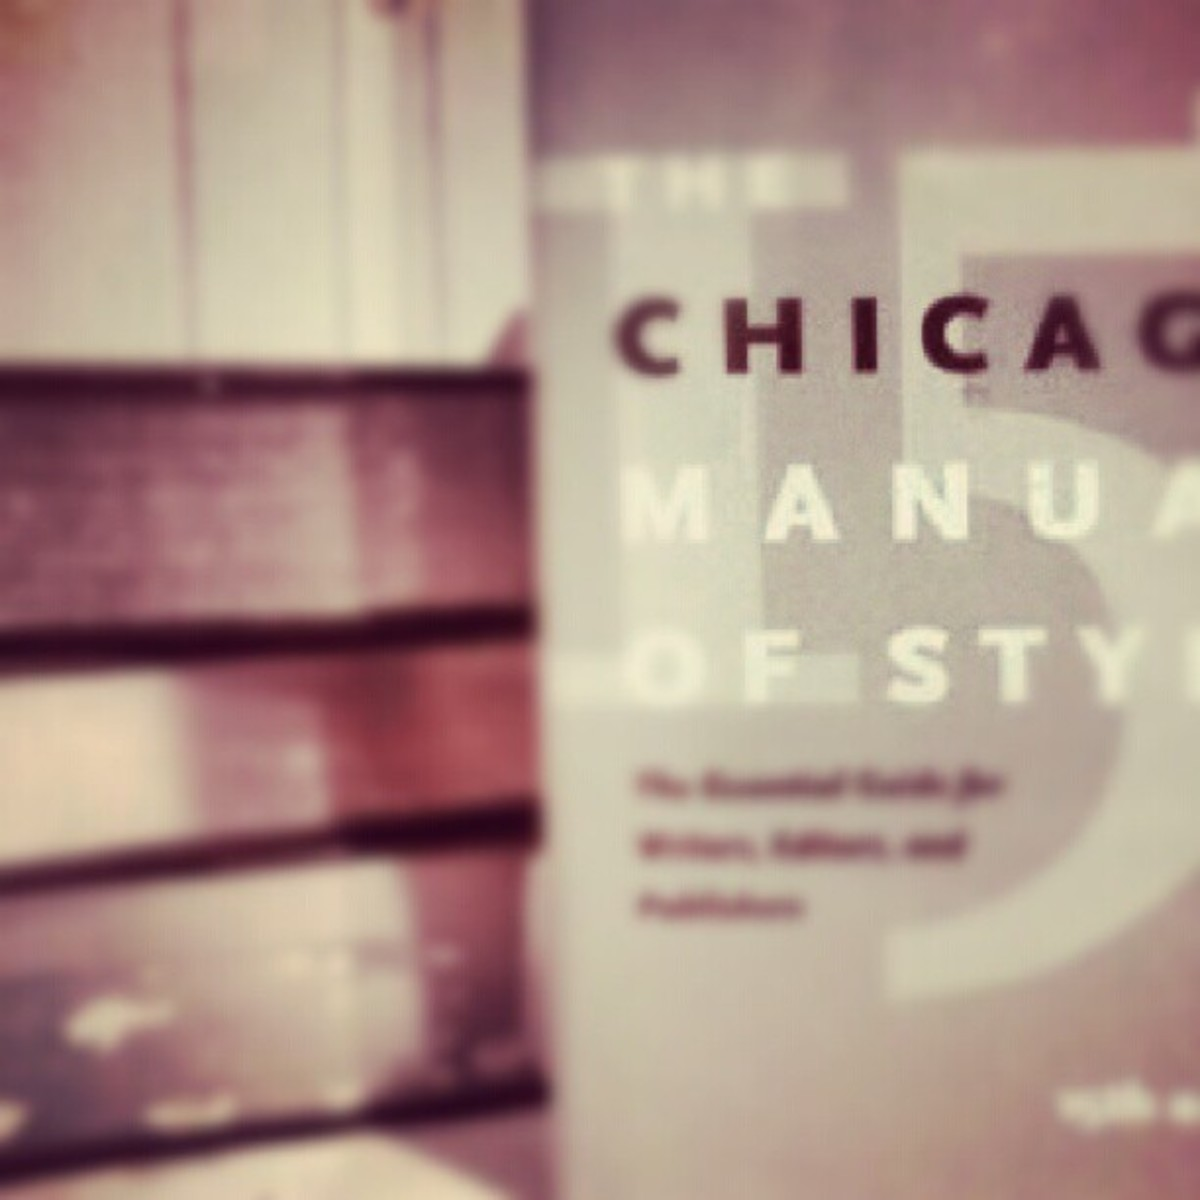 The Chicago Manual of Style is a great resource for writing in the correct format for each of the writing styles of English literature.